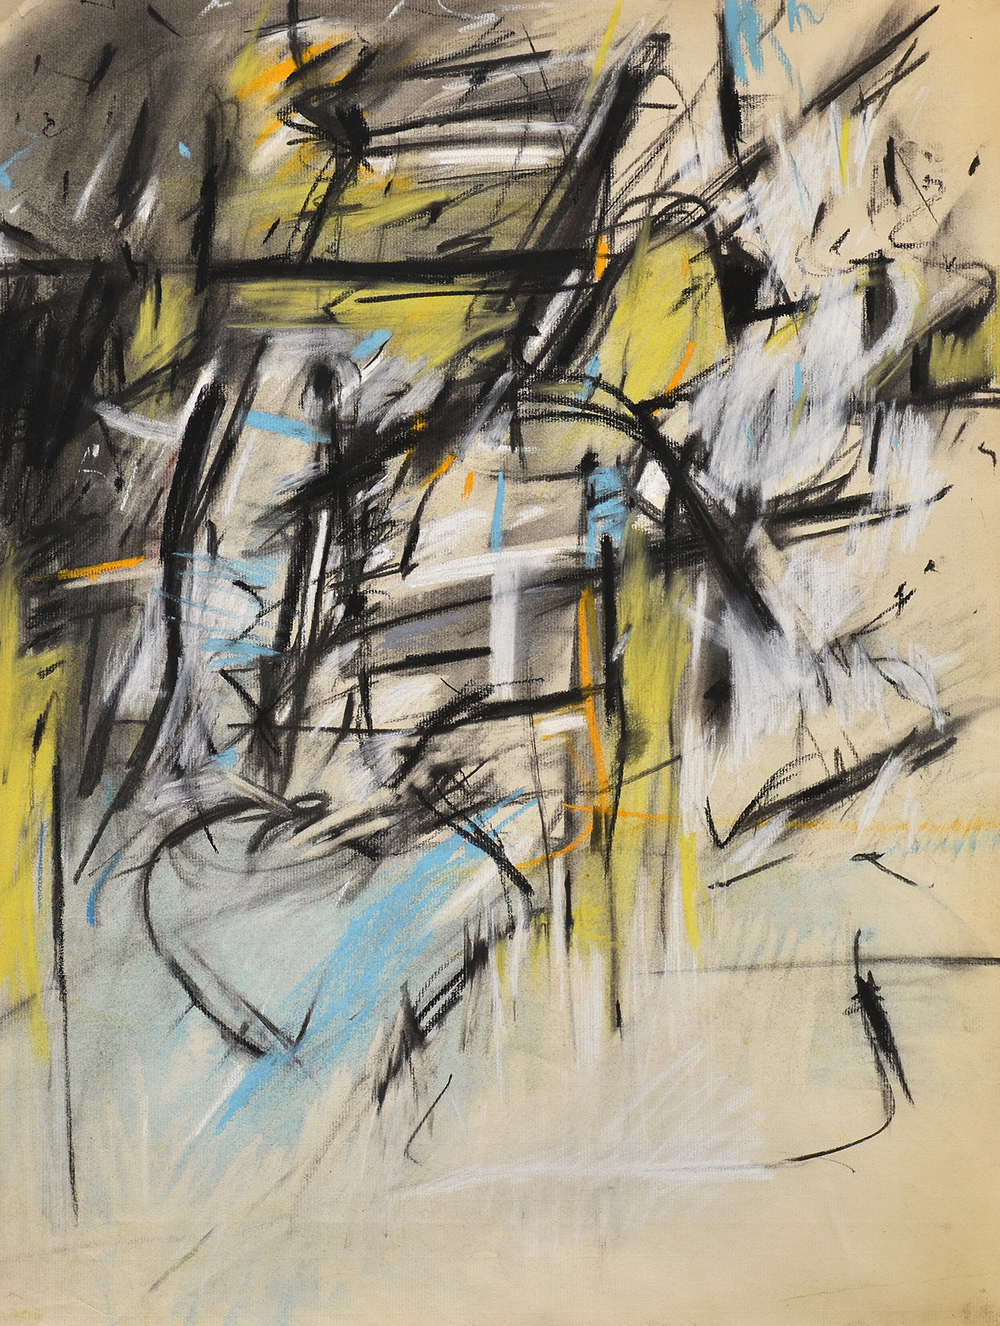 #29 Untitled  , Pastel and charcoal on Ingres laid paper,1955, 25 x 19 inches